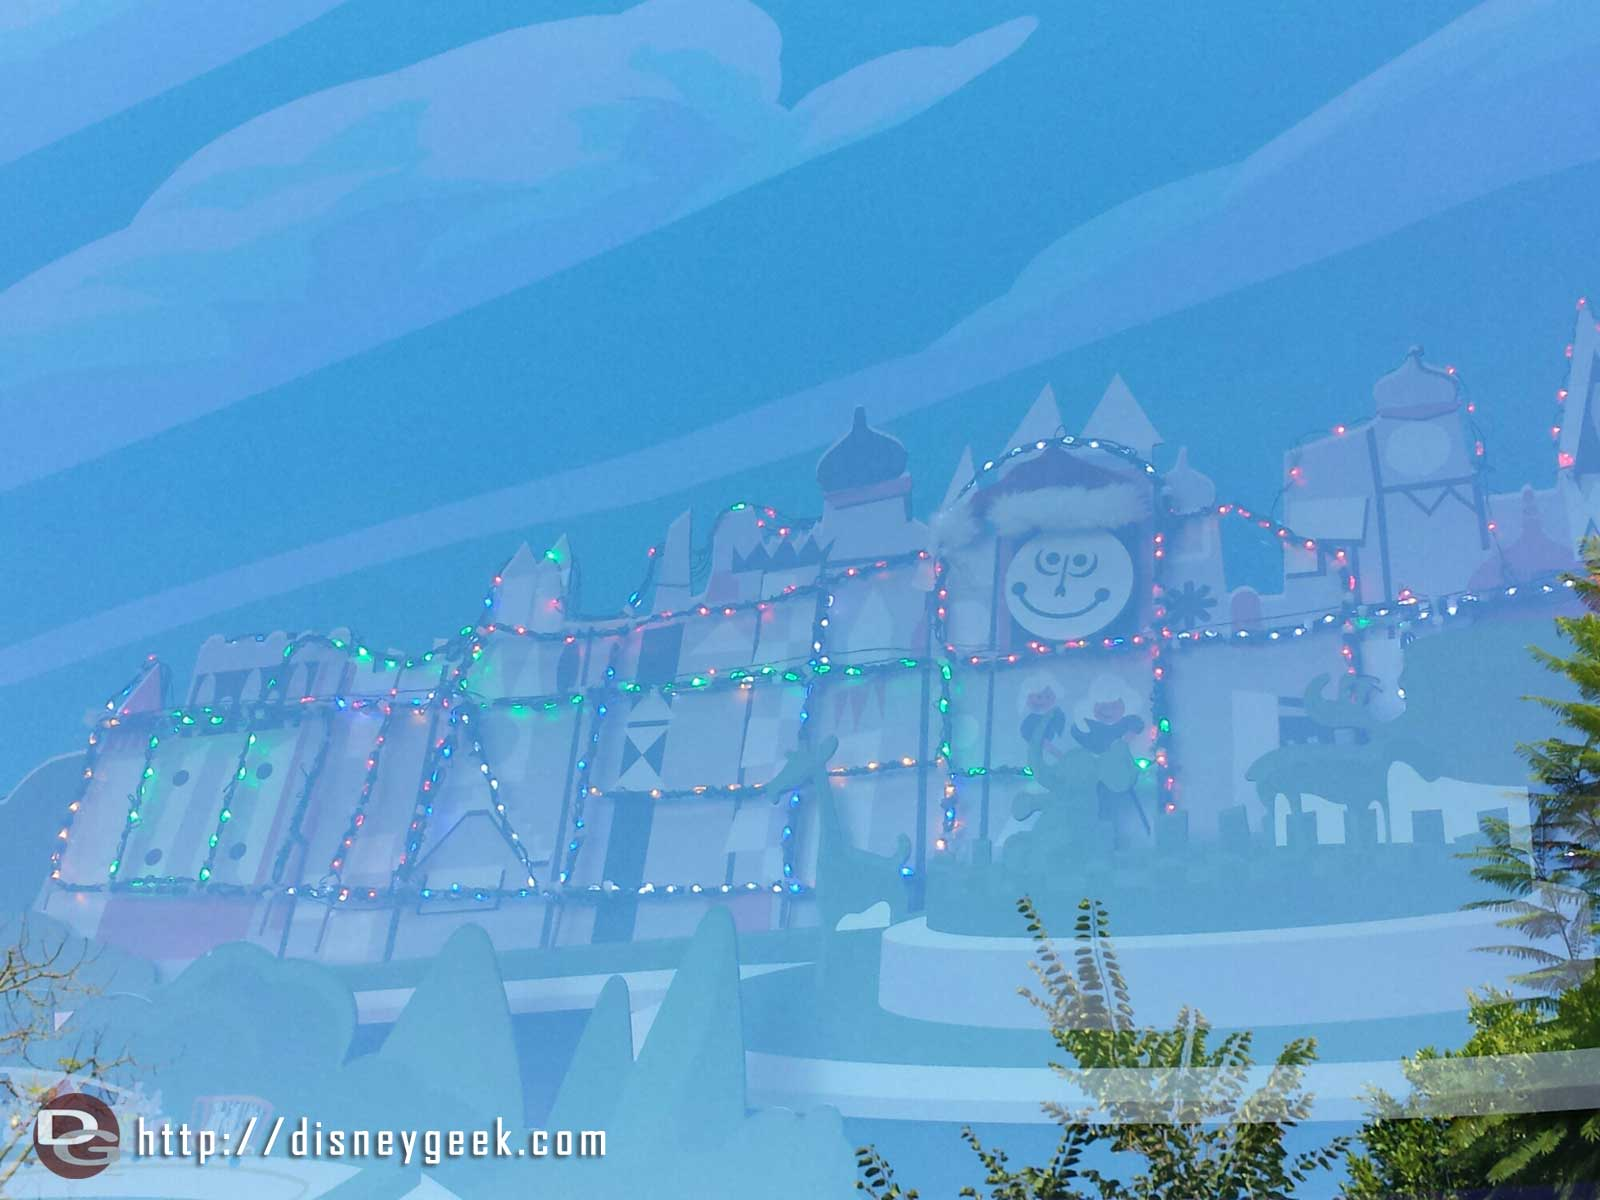 Christmas is arriving at the #Disneyland Resort. The World of Disney Small World has its lights